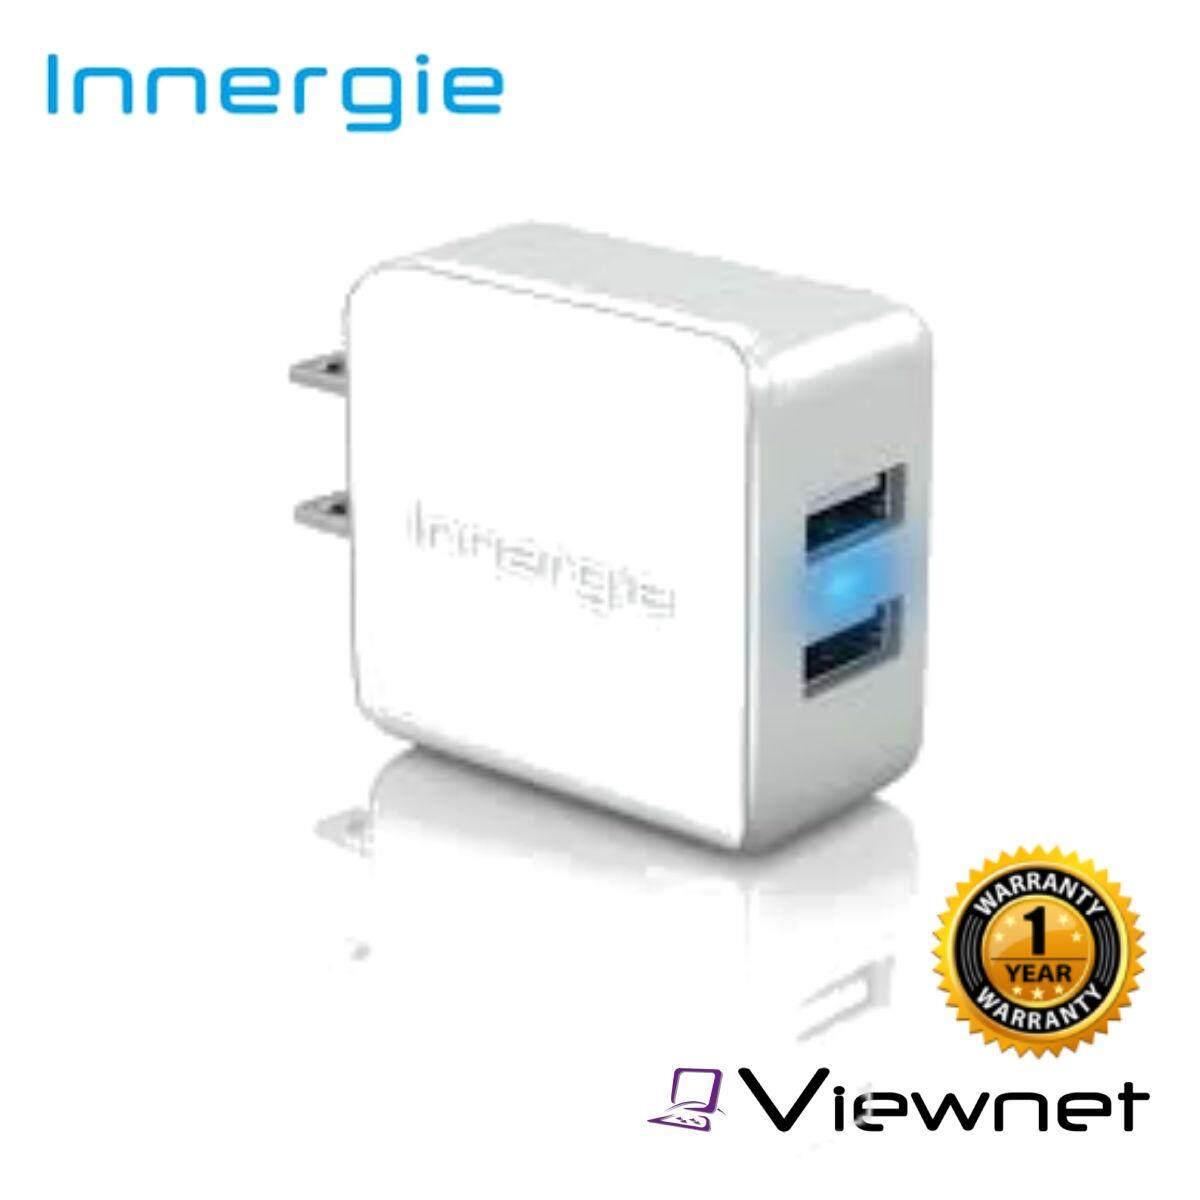 Innergie 2-USB 1.5A With Micro USB Cable Power Combo Plus Adapter (ADP-15VH)